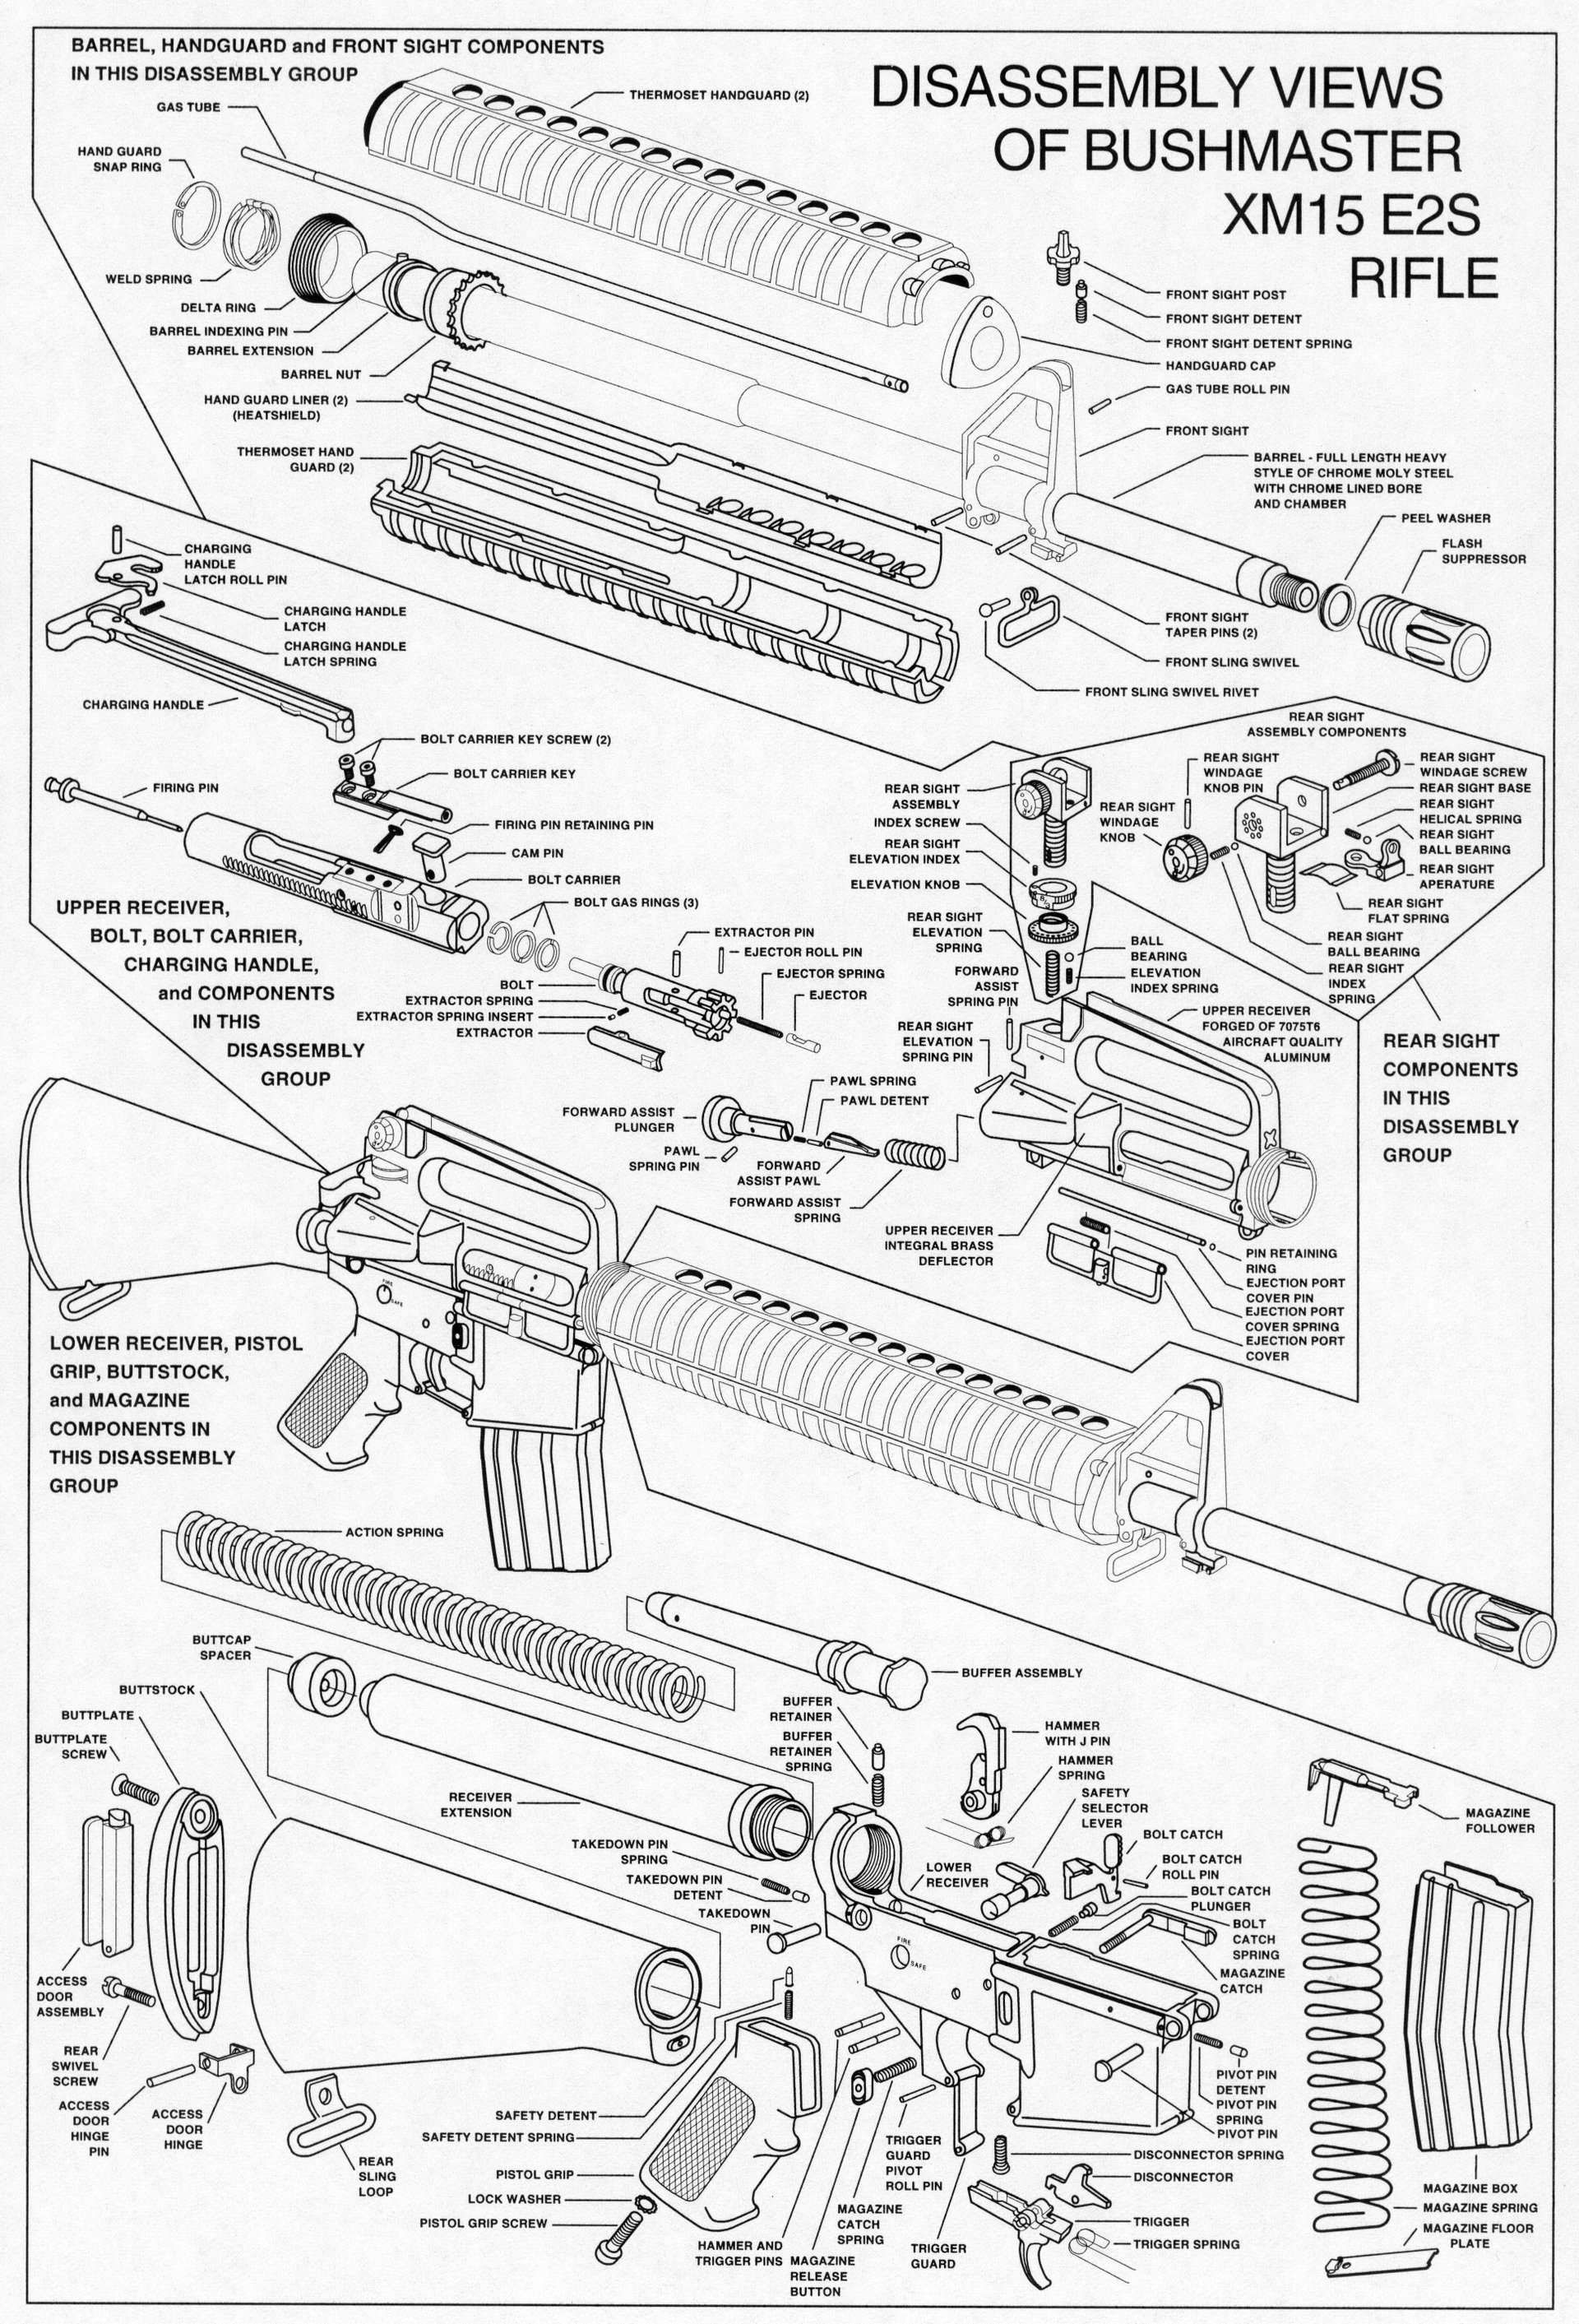 ak 47 receiver parts diagram 93 chevy 1500 alternator wiring exploded schematic ar 15 pinterest firearms guns gun kits